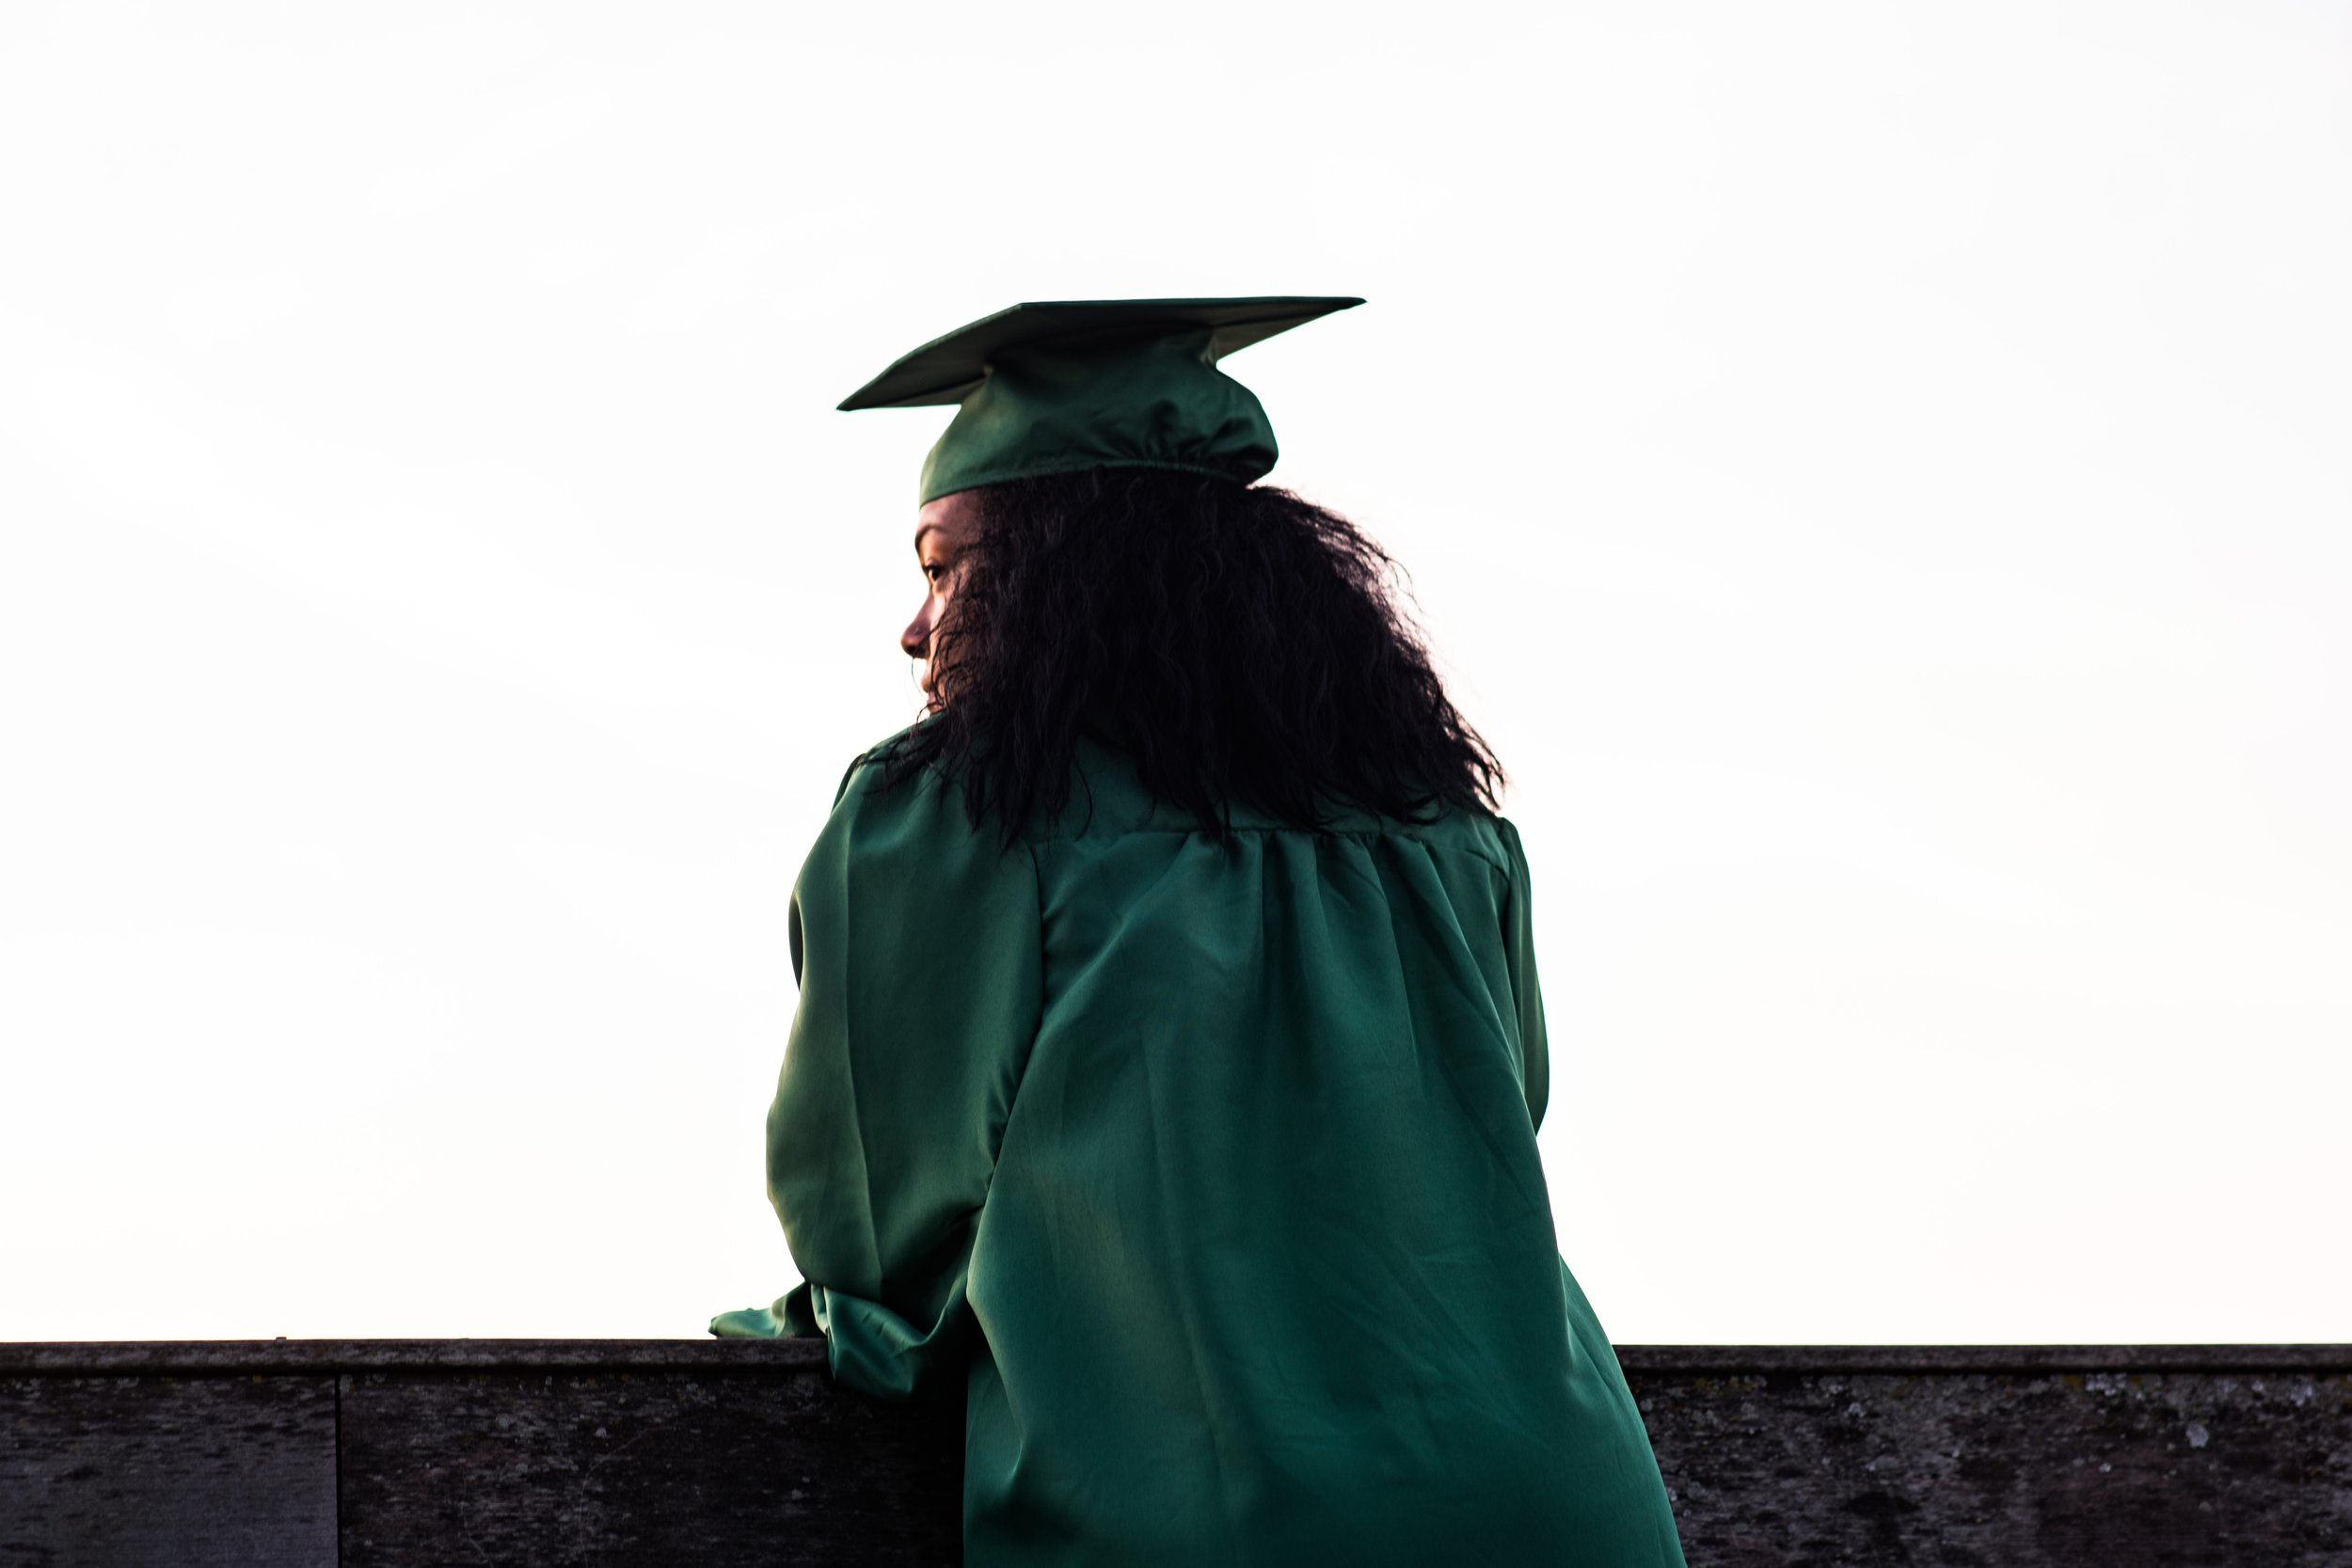 Image: Young woman in a graduation cap looking over ledge. Photo: Photo by  Andre Hunter  on  Unsplash